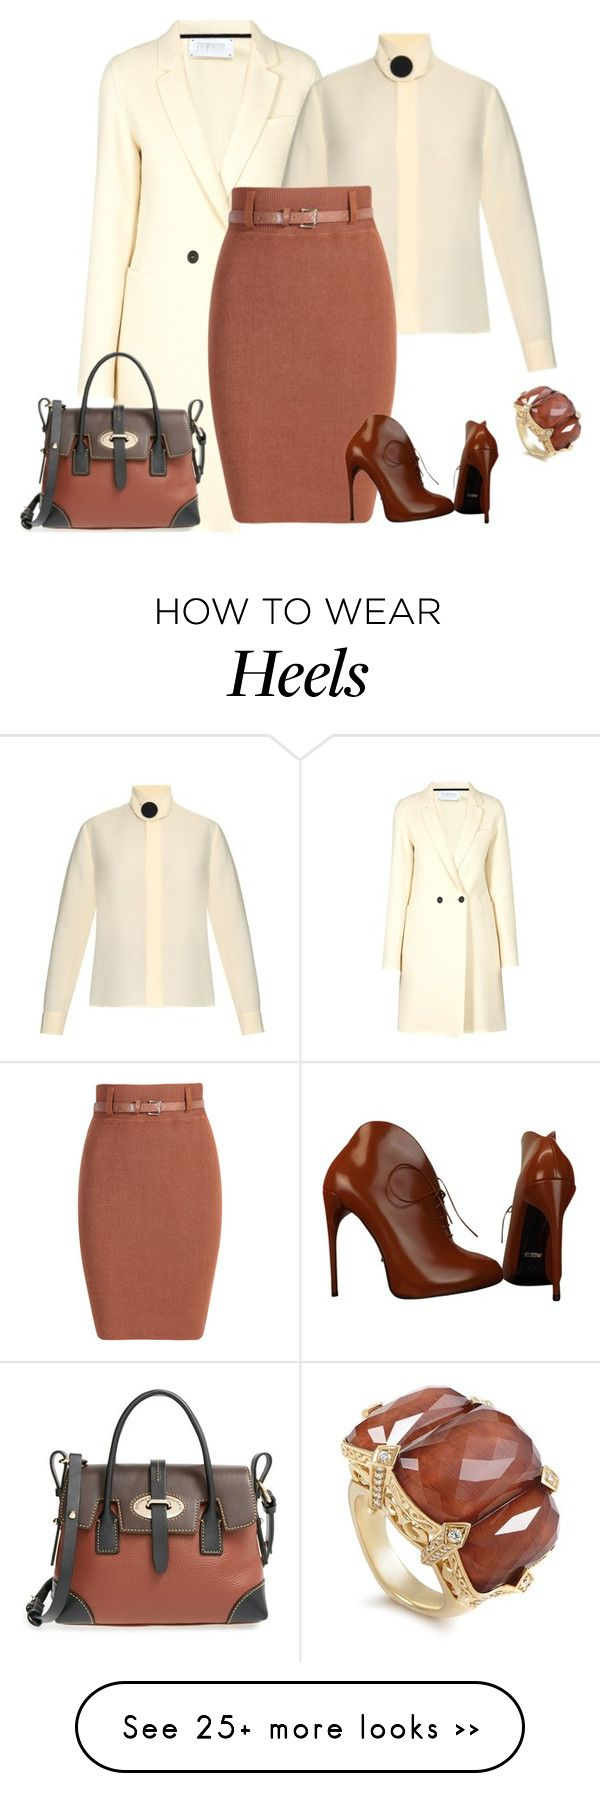 """""""outfit 2388"""" by natalyag on Polyvore featuring Harris Wharf London, Balenciaga, Dooney & Bourke, Gucci and Stephen Webster"""